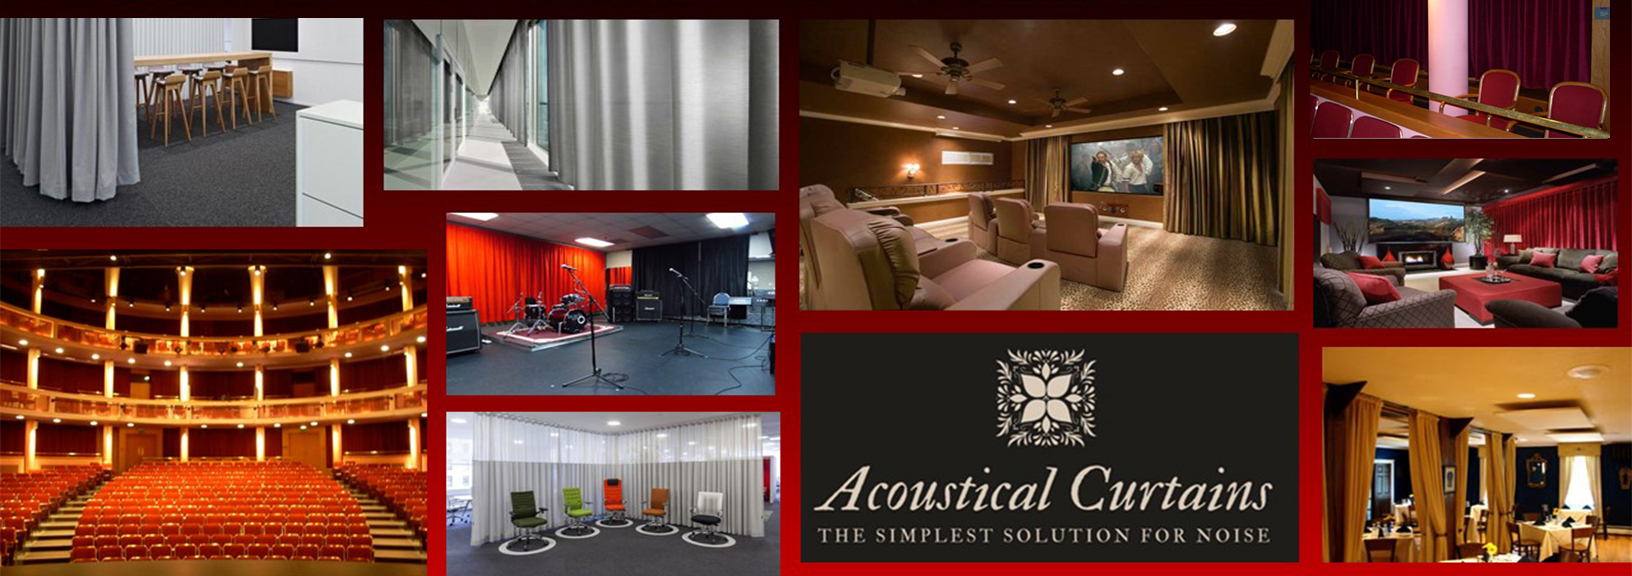 Acoustical Curtains Are Custom Made And Absorb Sound